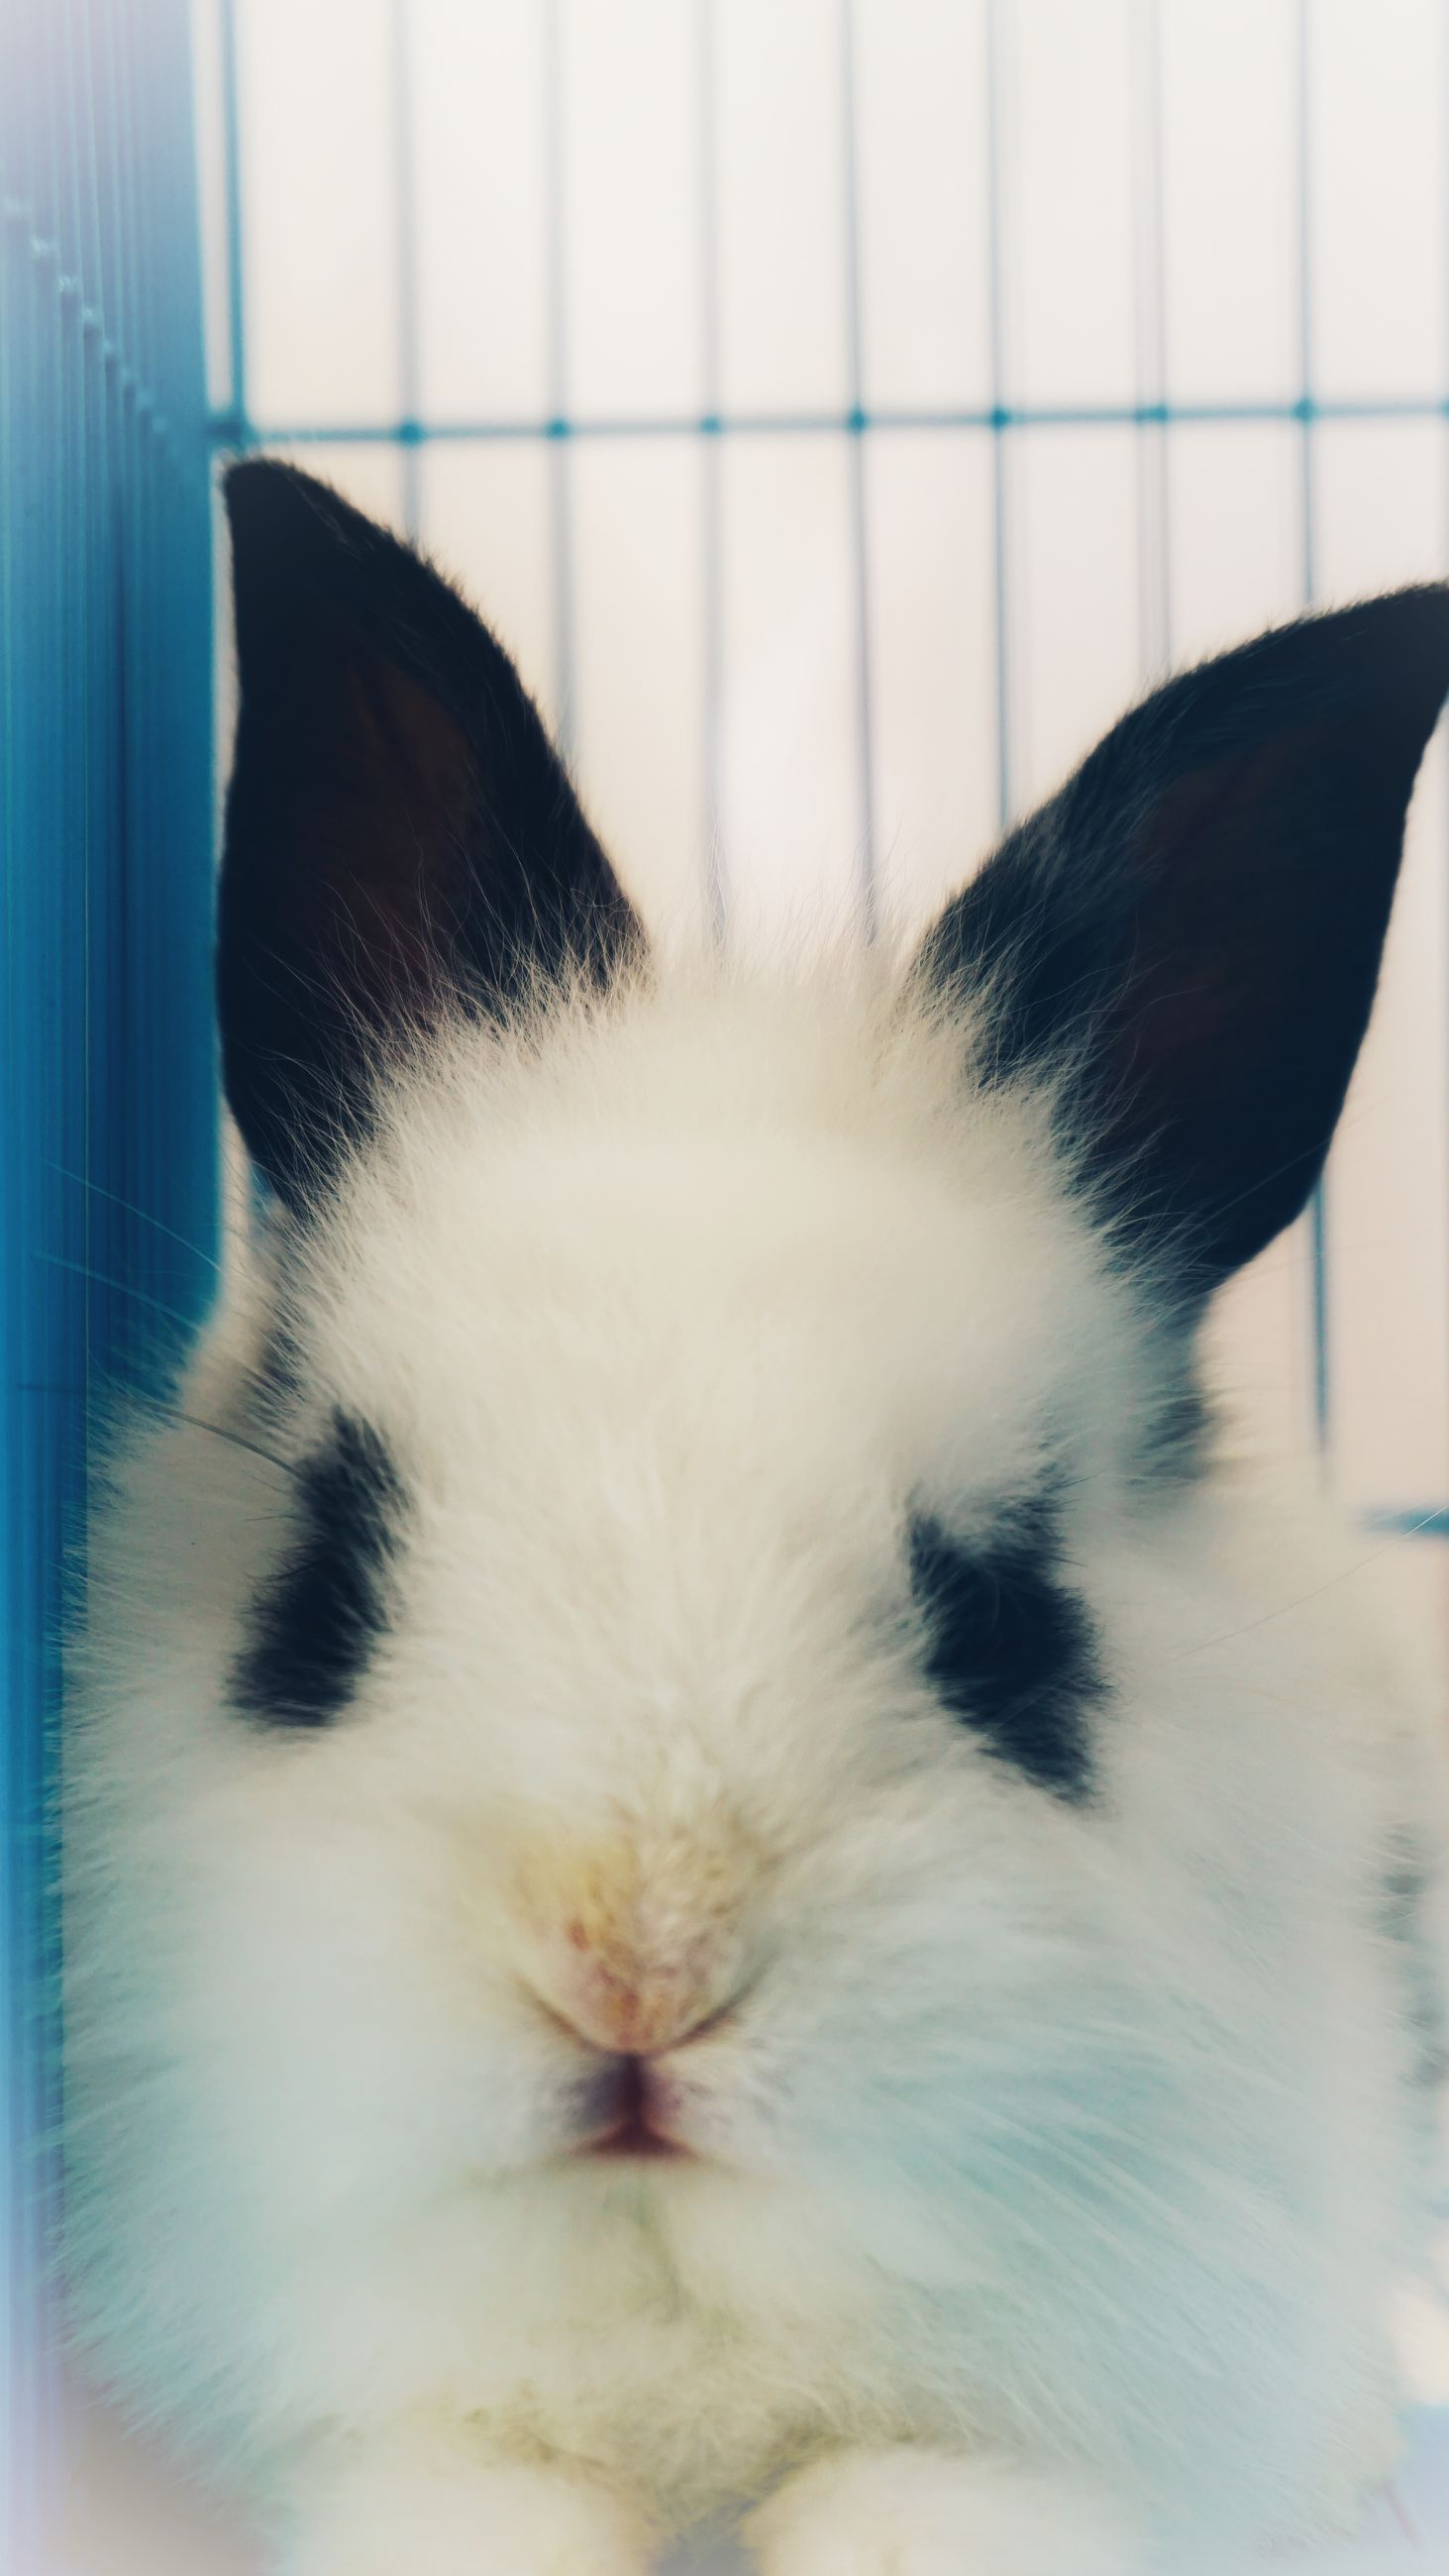 mammal, domestic, animal themes, pets, animal, one animal, domestic animals, vertebrate, cat, feline, close-up, domestic cat, rabbit - animal, indoors, animal body part, no people, rabbit, relaxation, white color, whisker, animal head